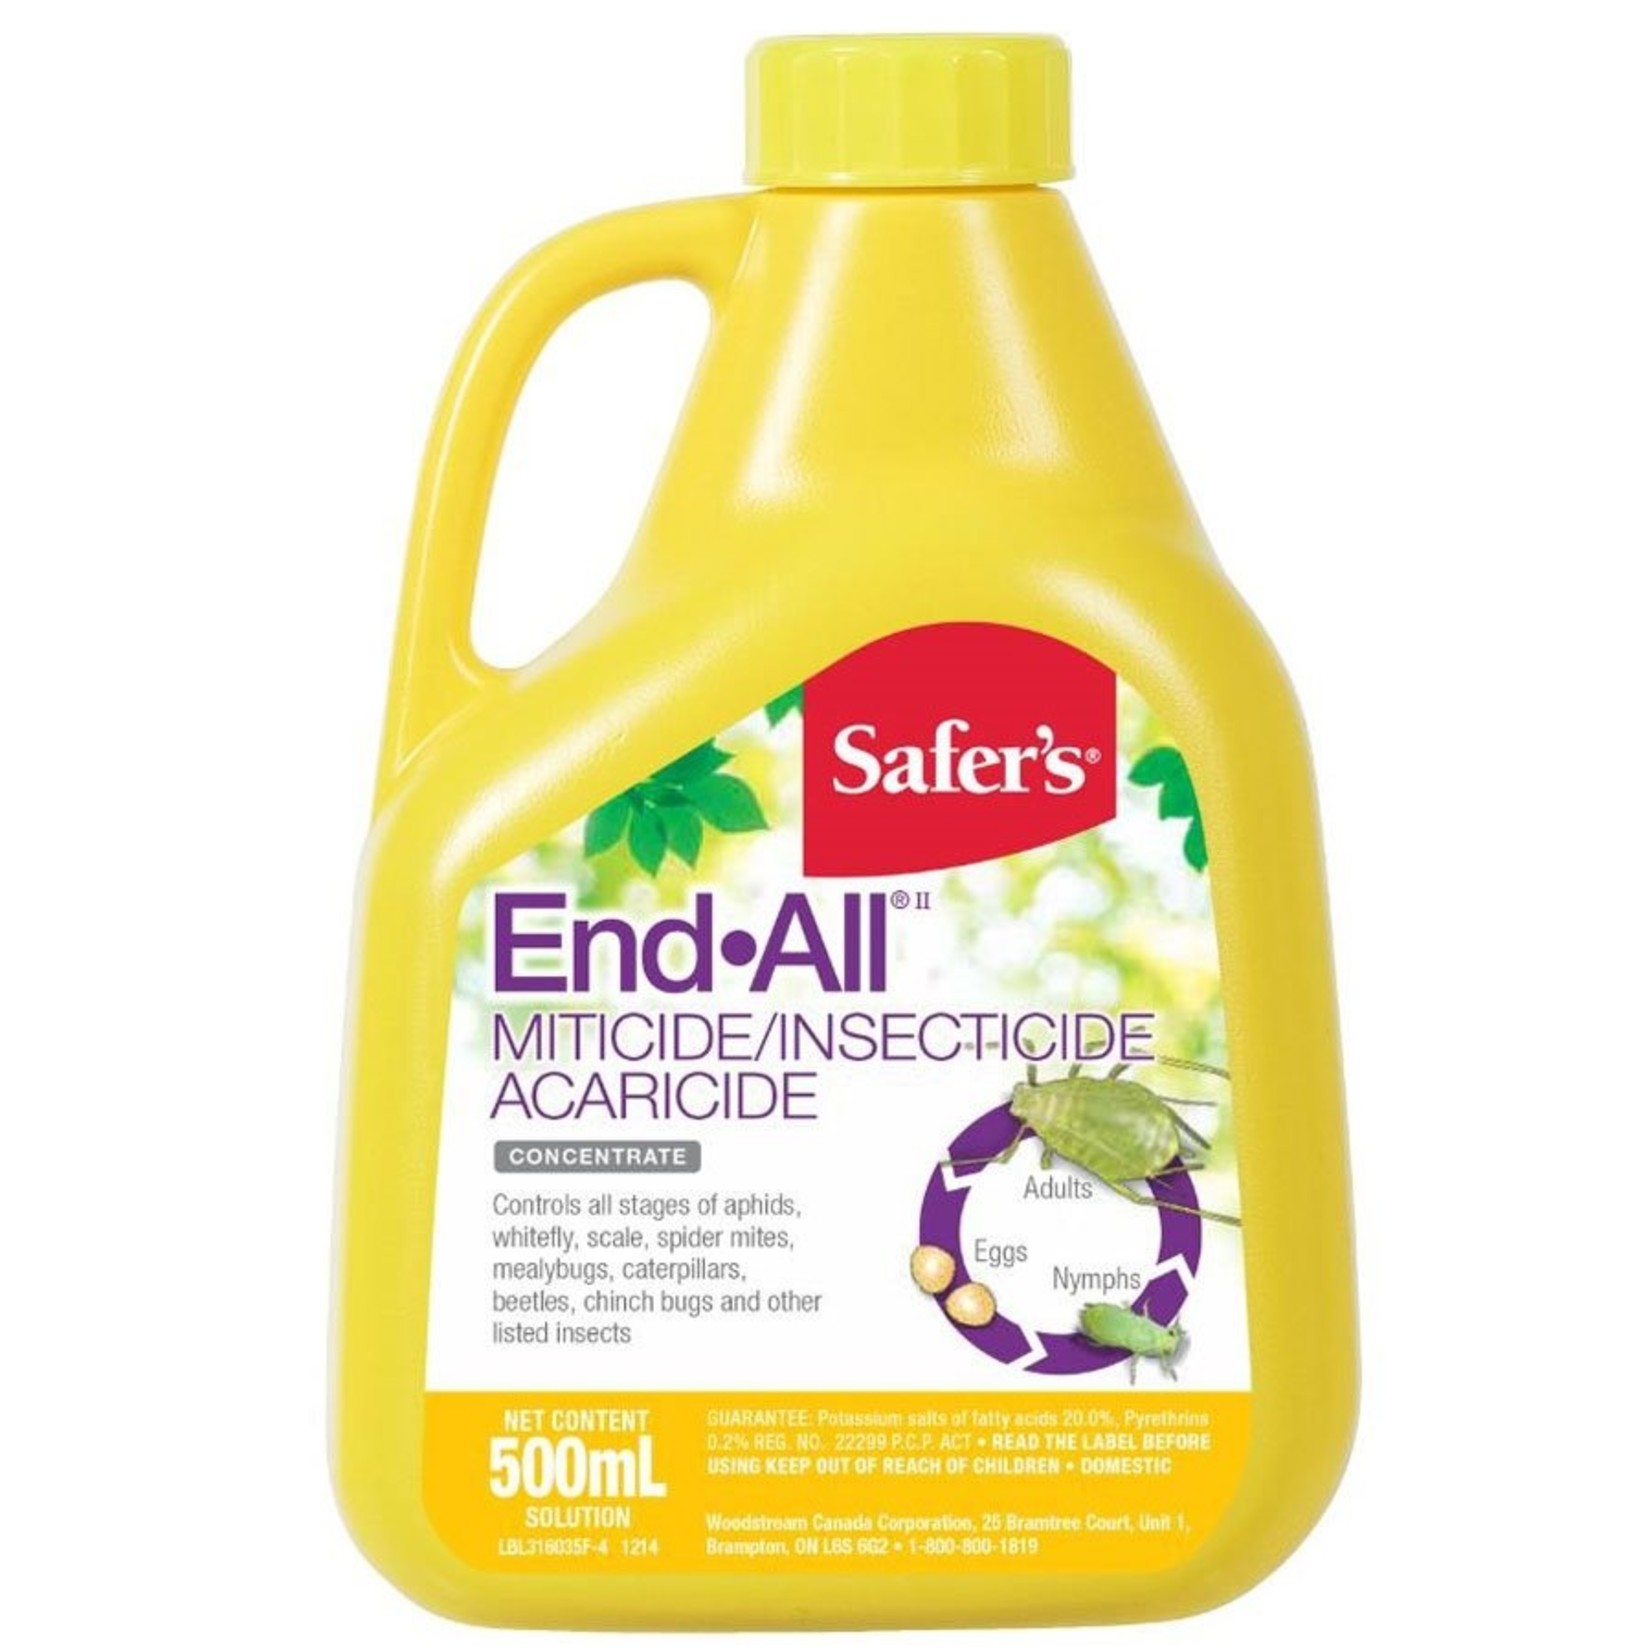 SAFERS SAFER'S END-ALL CONCENTRATED INSECTICIDE 500 ML (1)